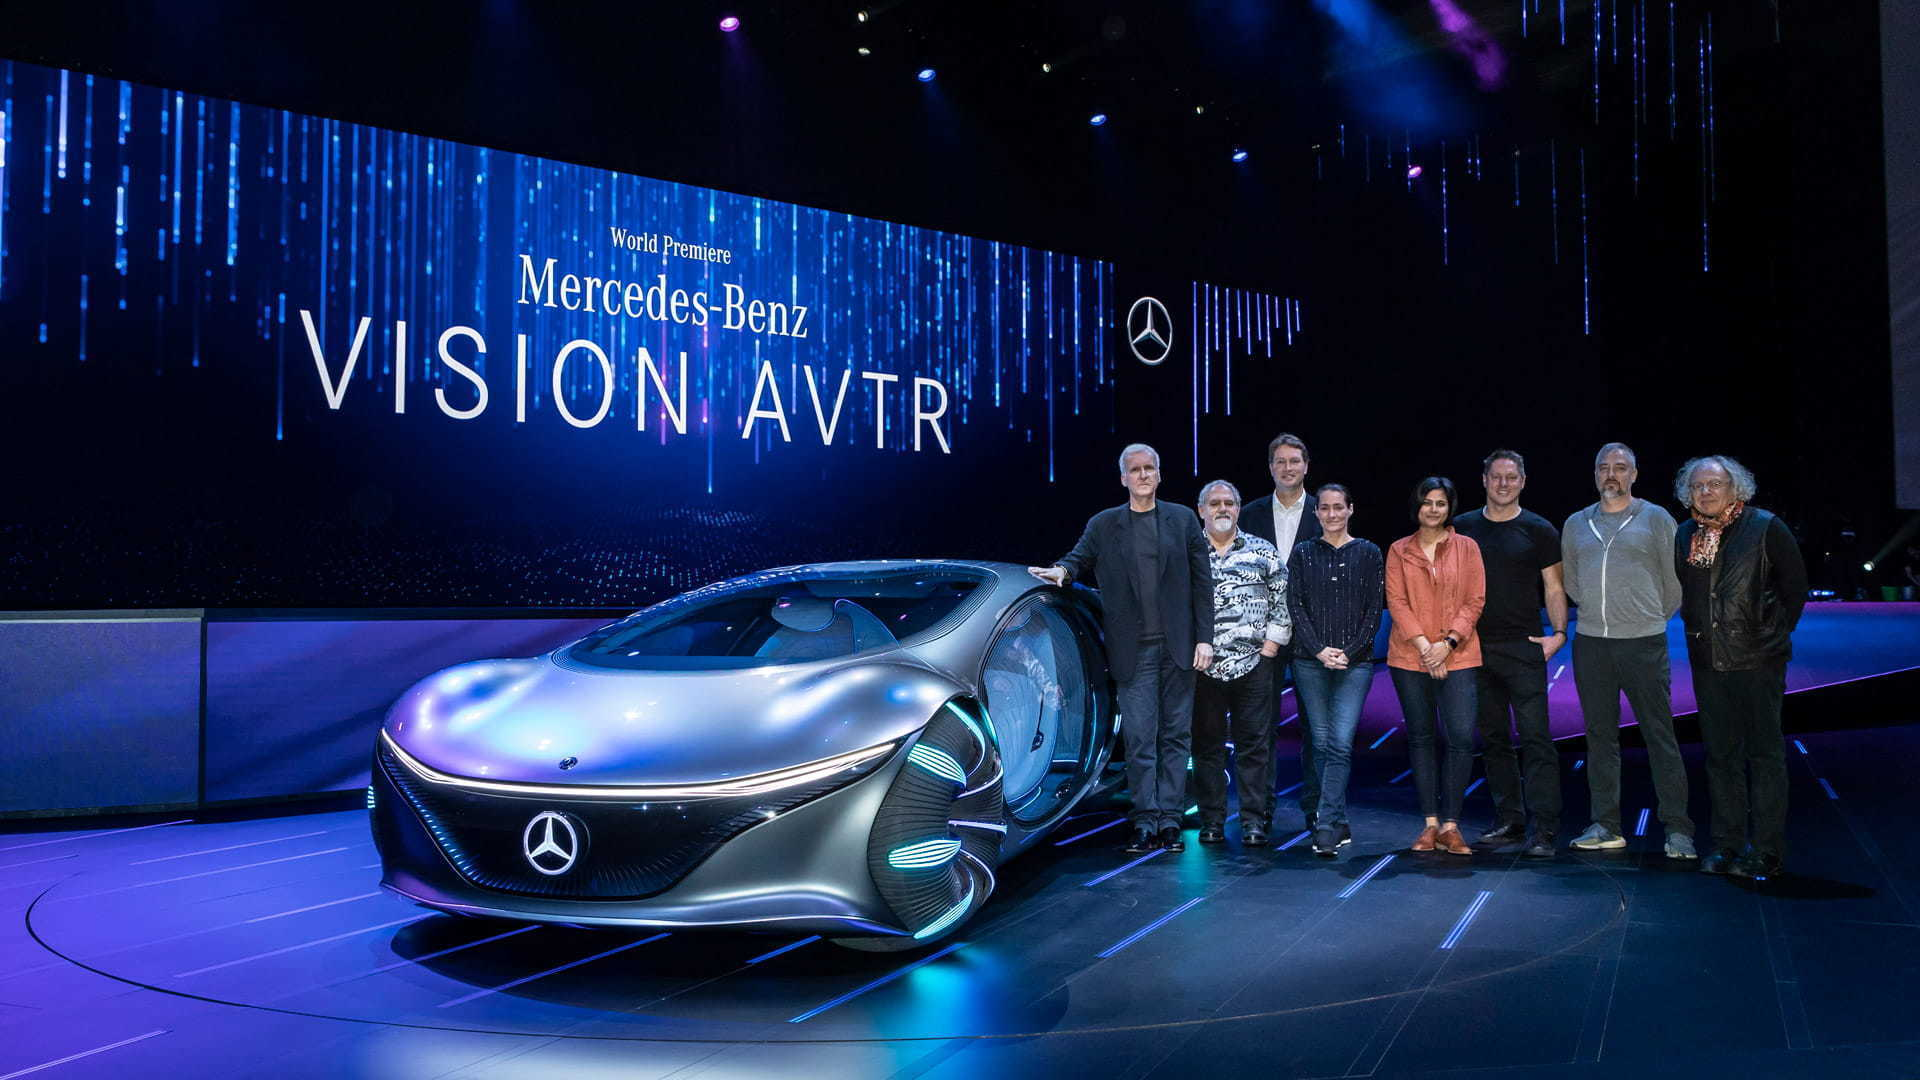 The Lightstorm and Mercedes-Benz teams pose with the VISION AVTR at CES 2020.